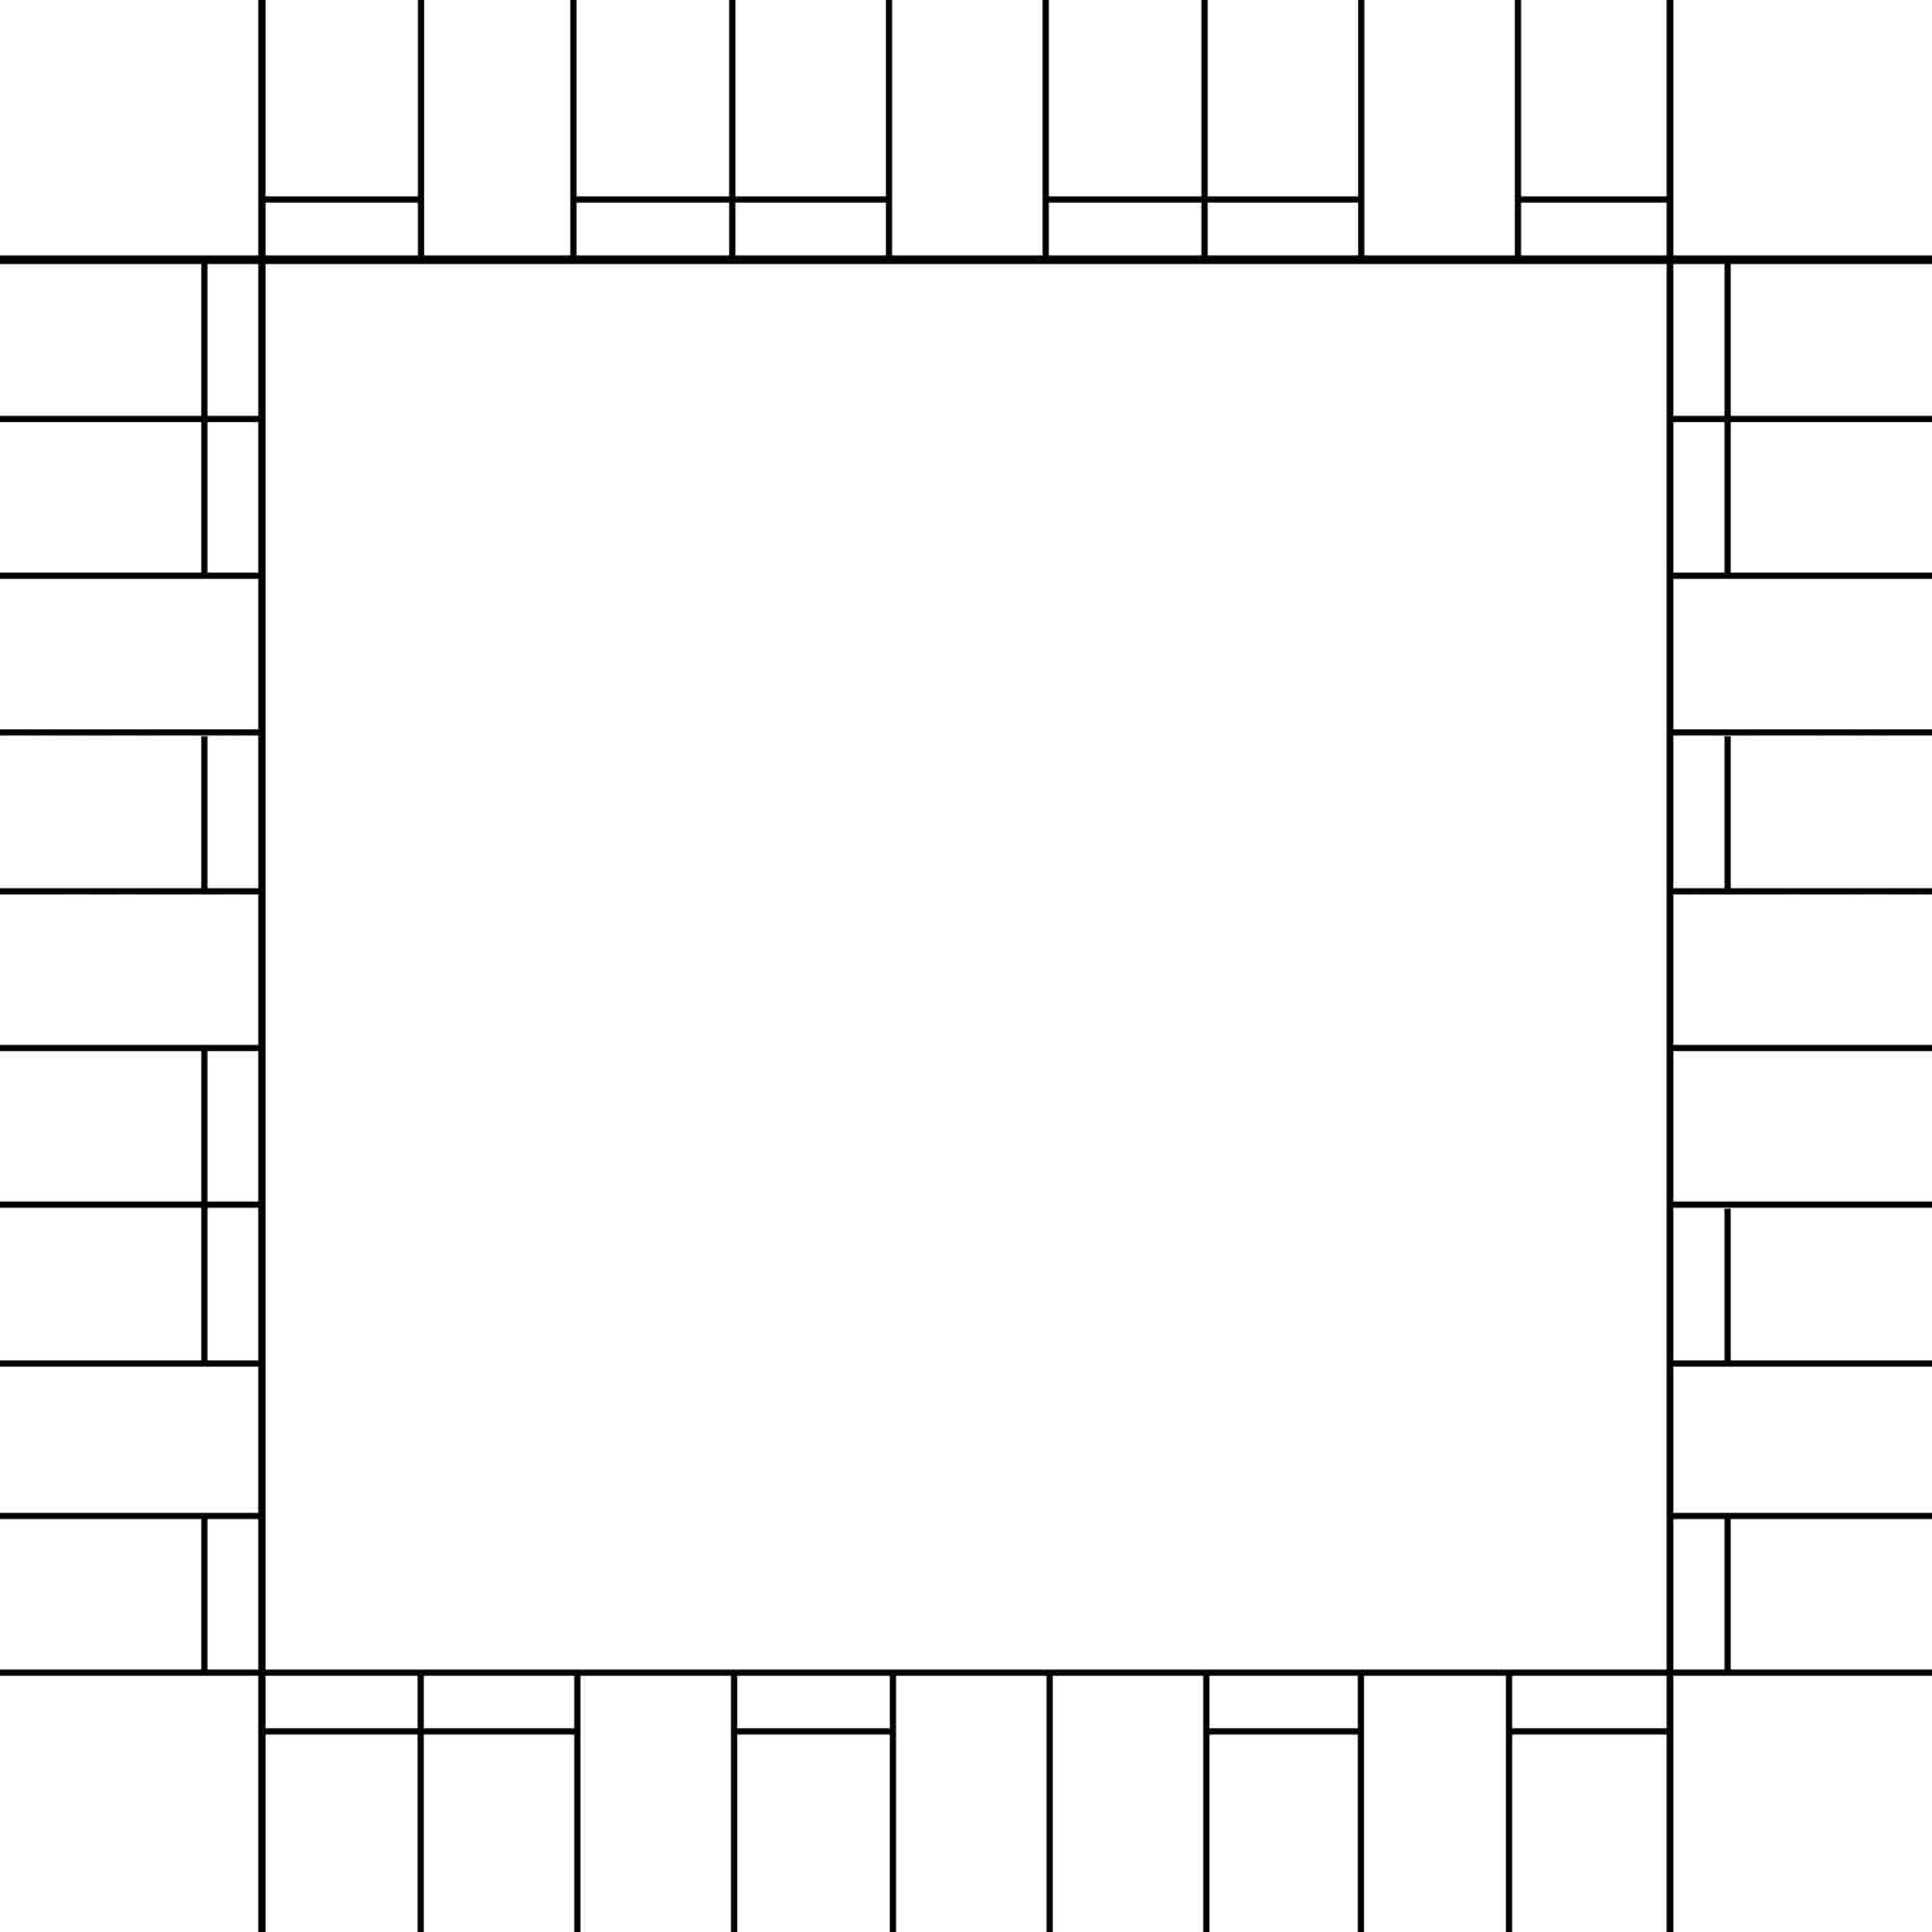 Printable Blank Monopoly Game Templates at